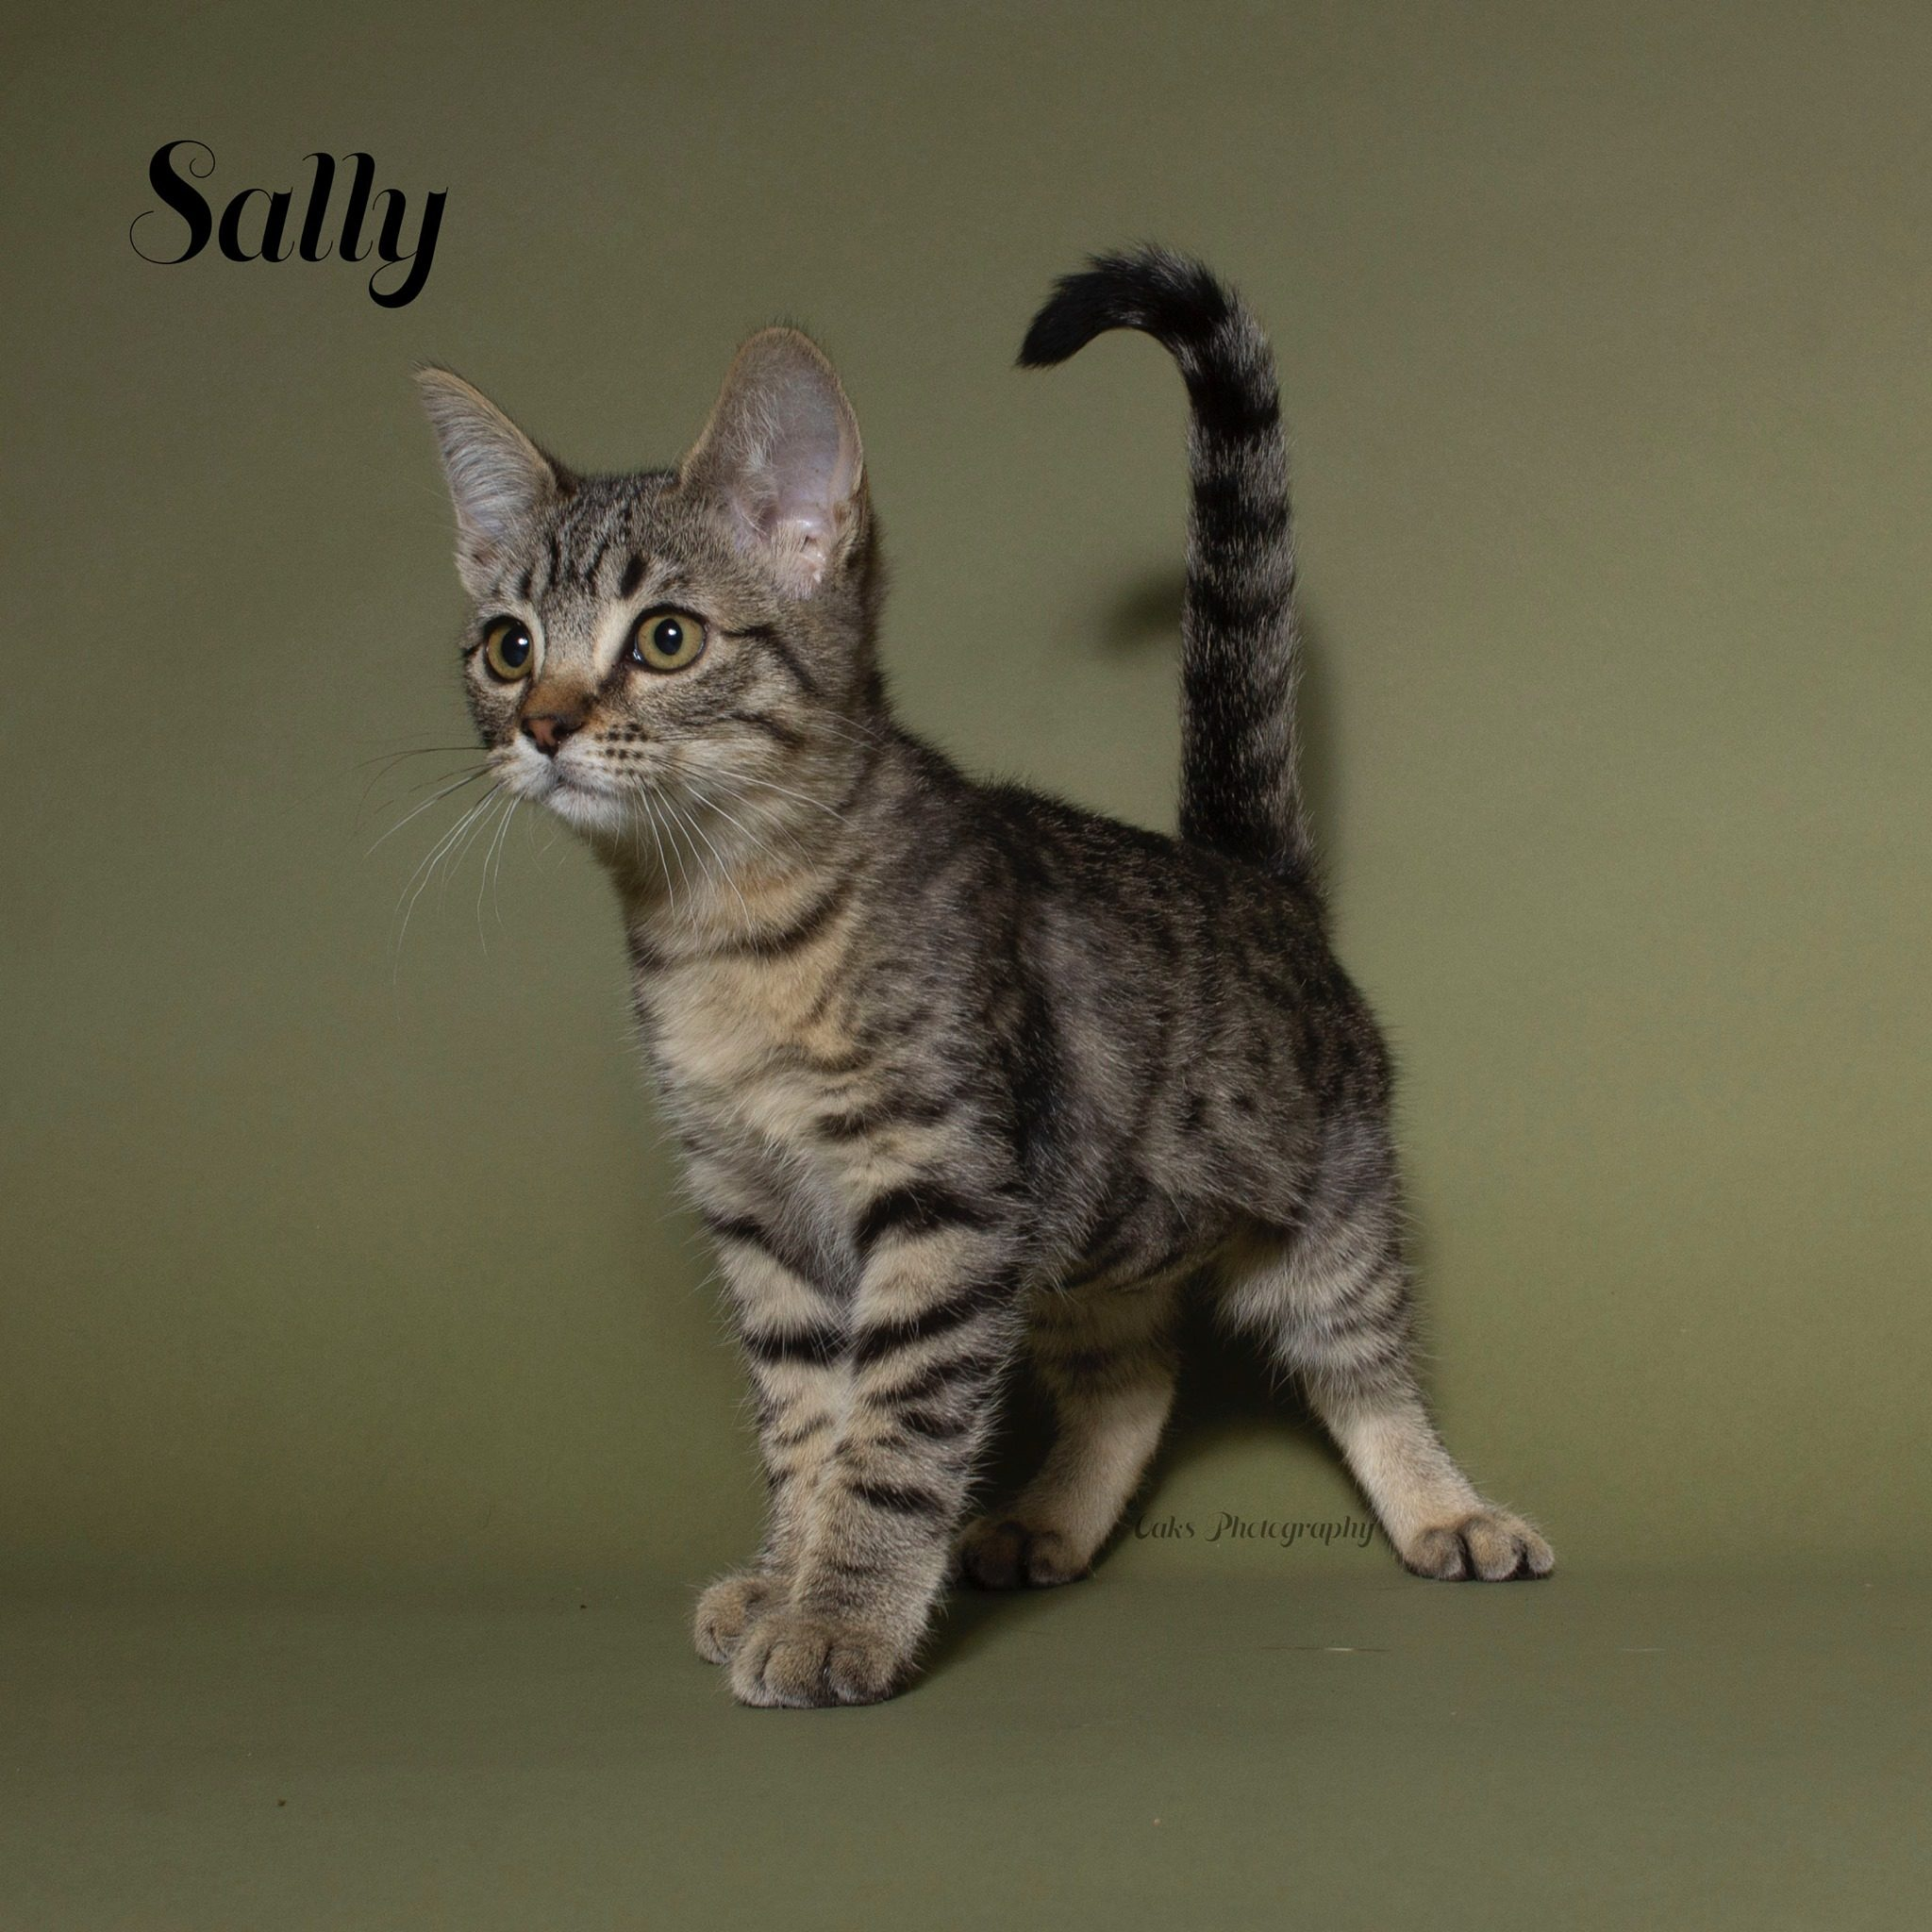 Adopt Sally the purrfect kitty with Foster Army Animal Rescue in Riverside, CA